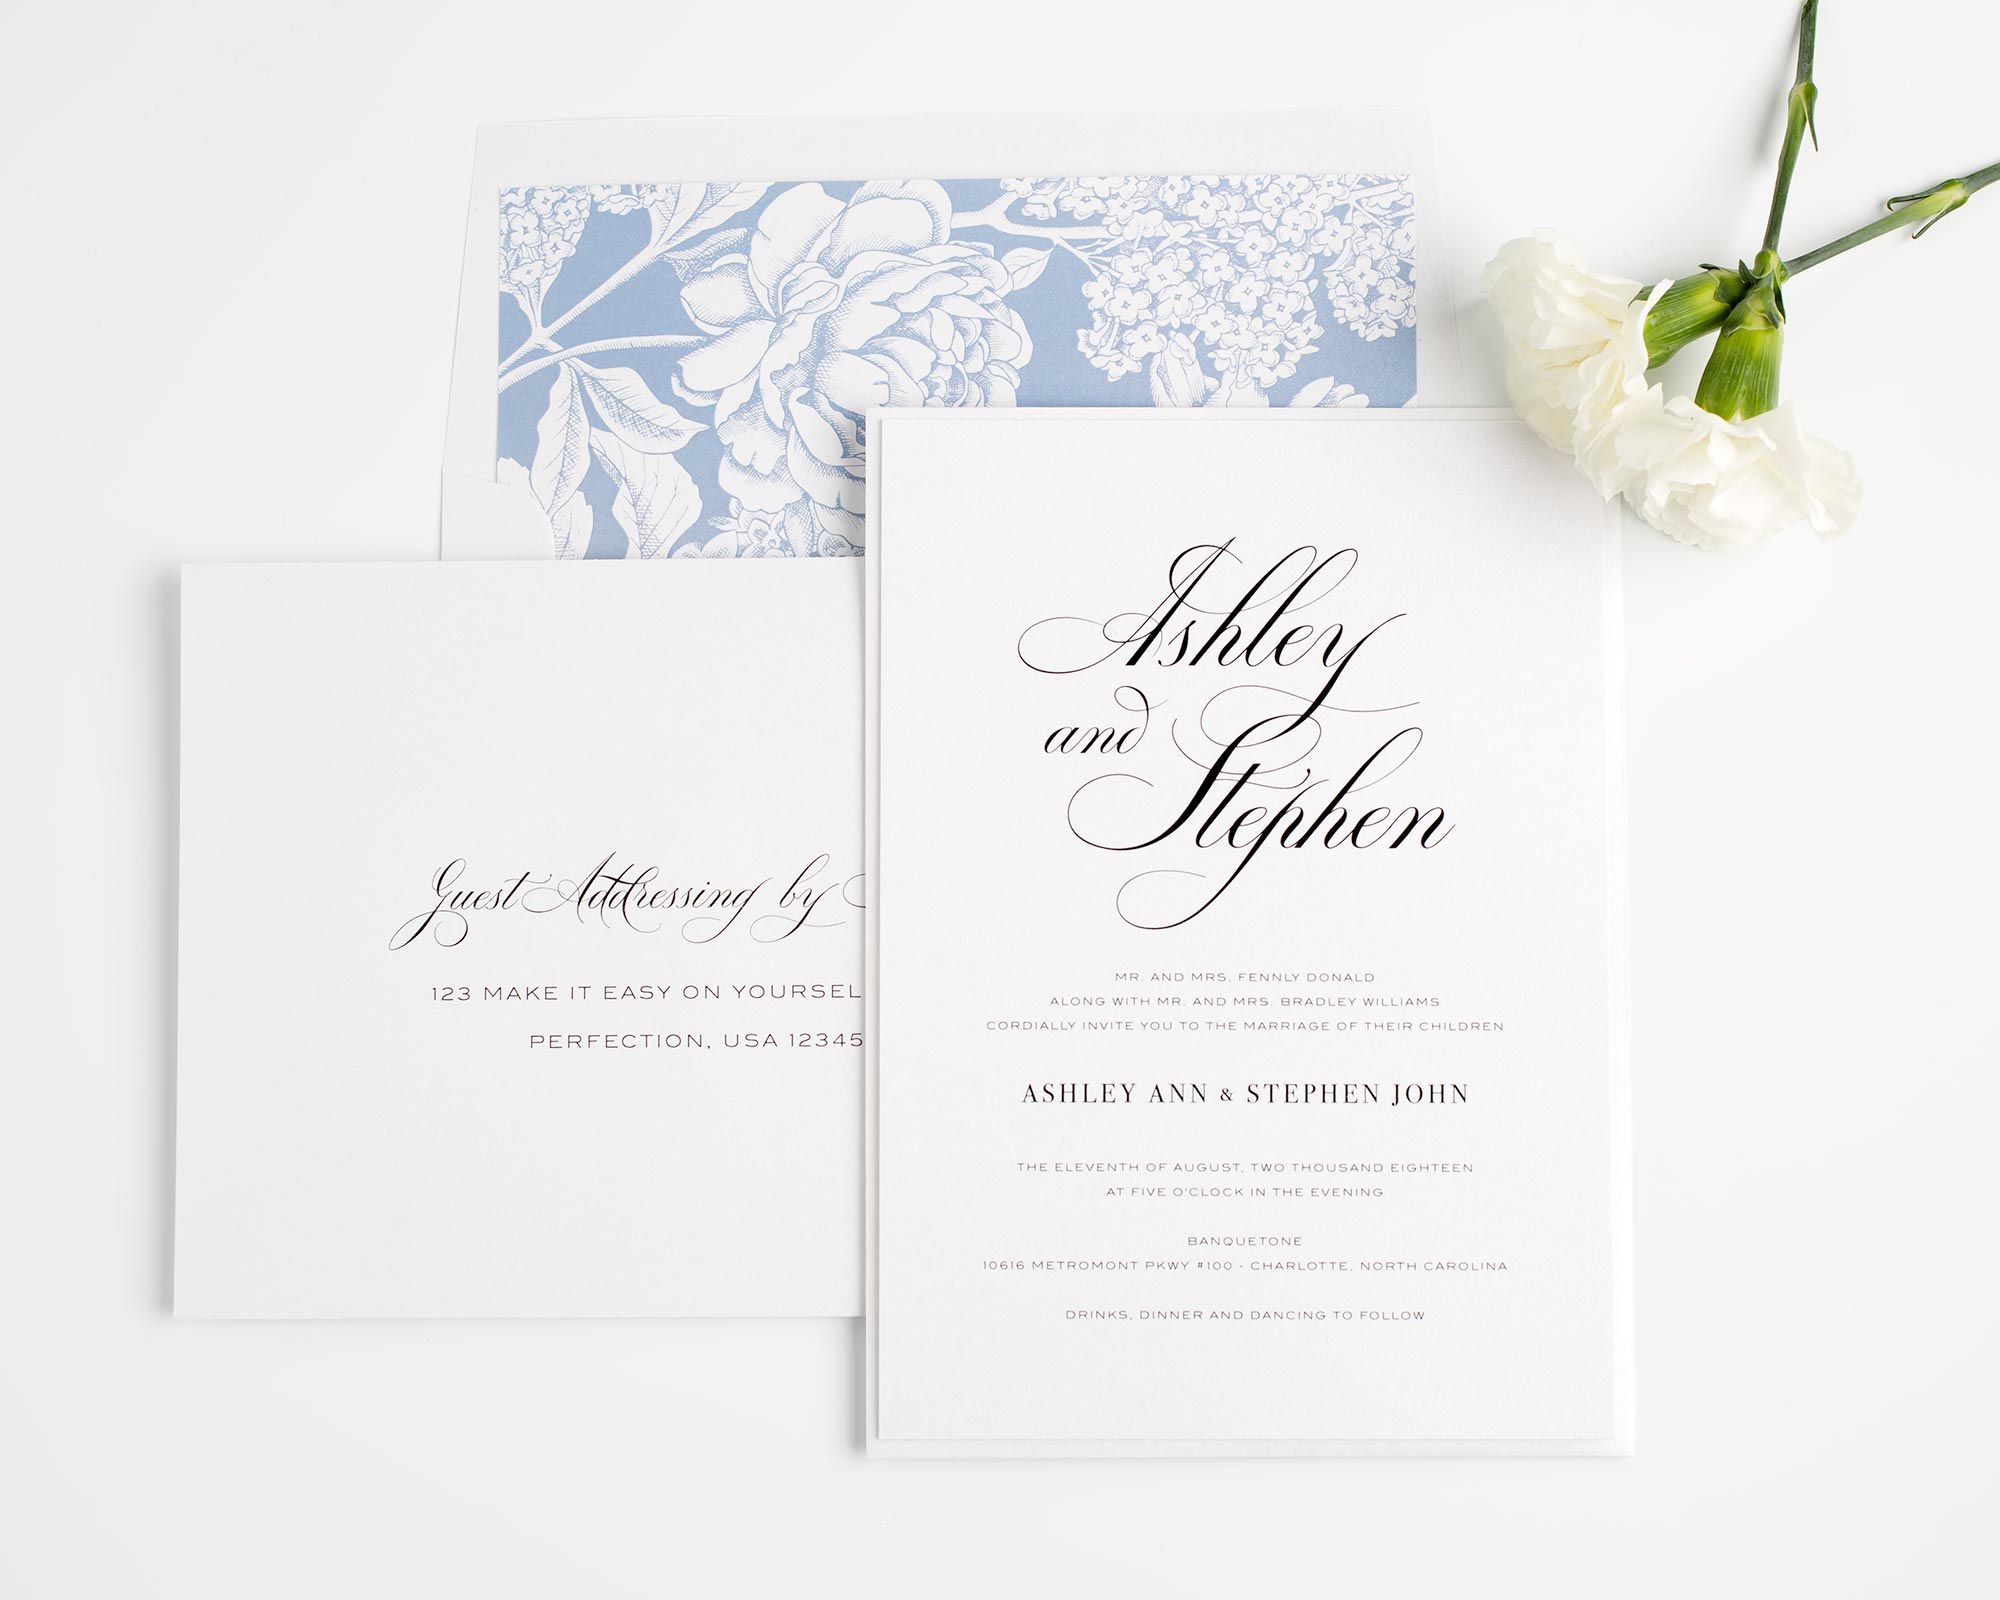 Classic and Elegant Wedding Invitations in Serenity Blue